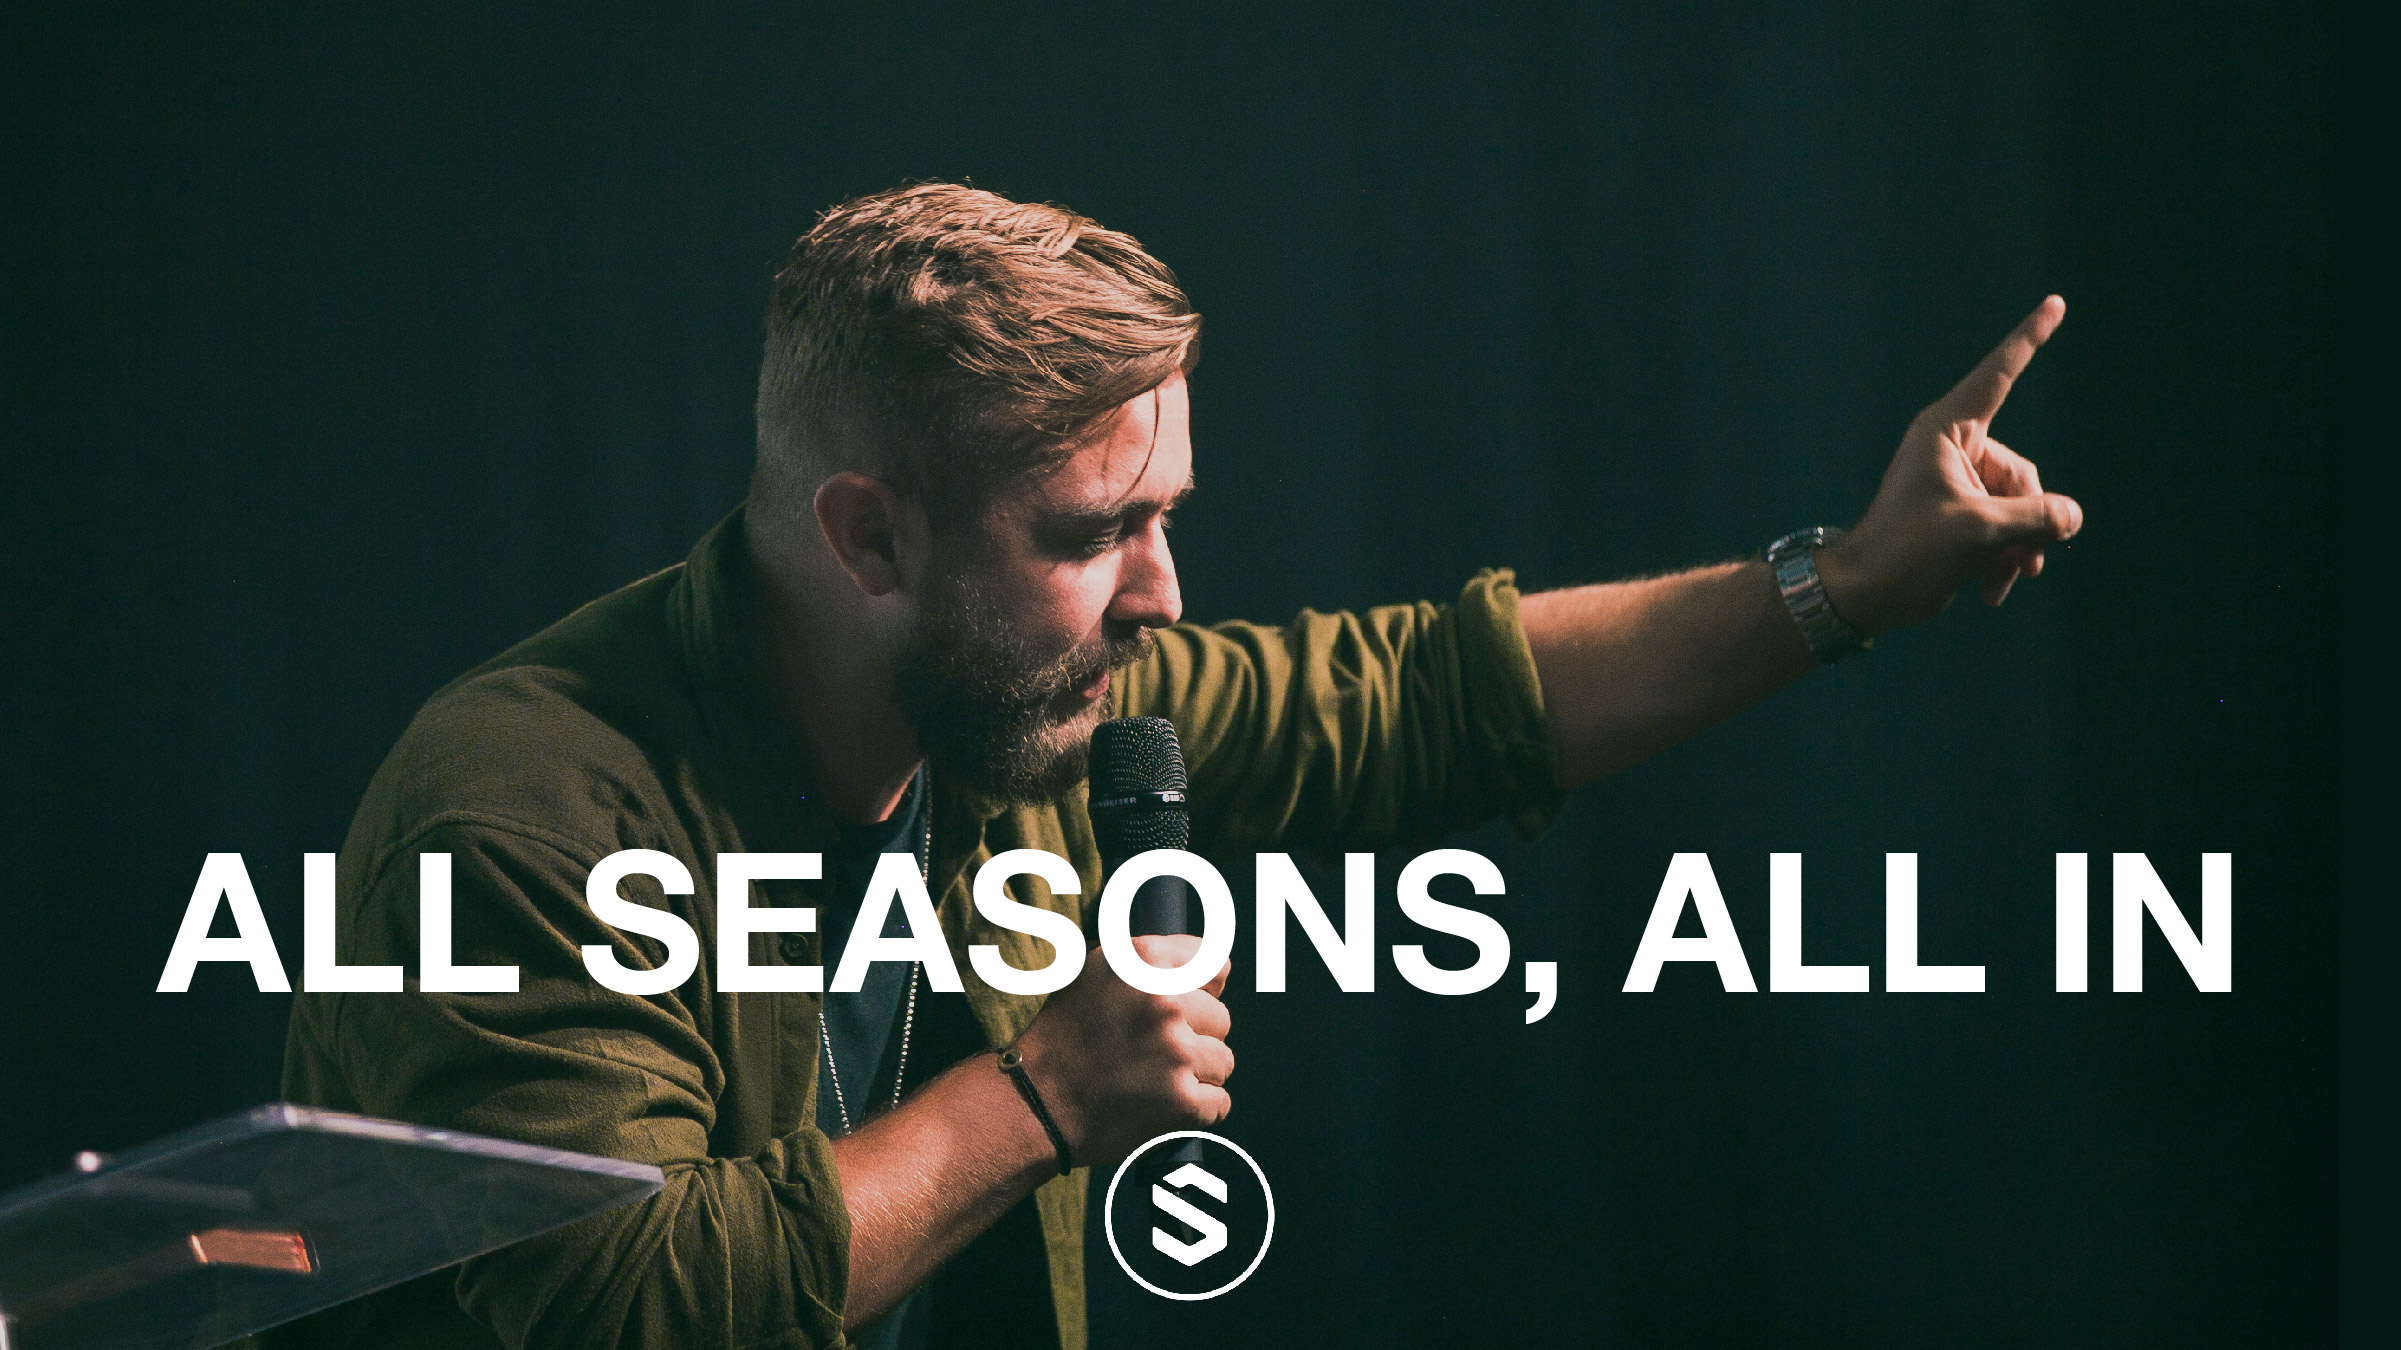 Service Thumbnails - All seasons, all in.jpg